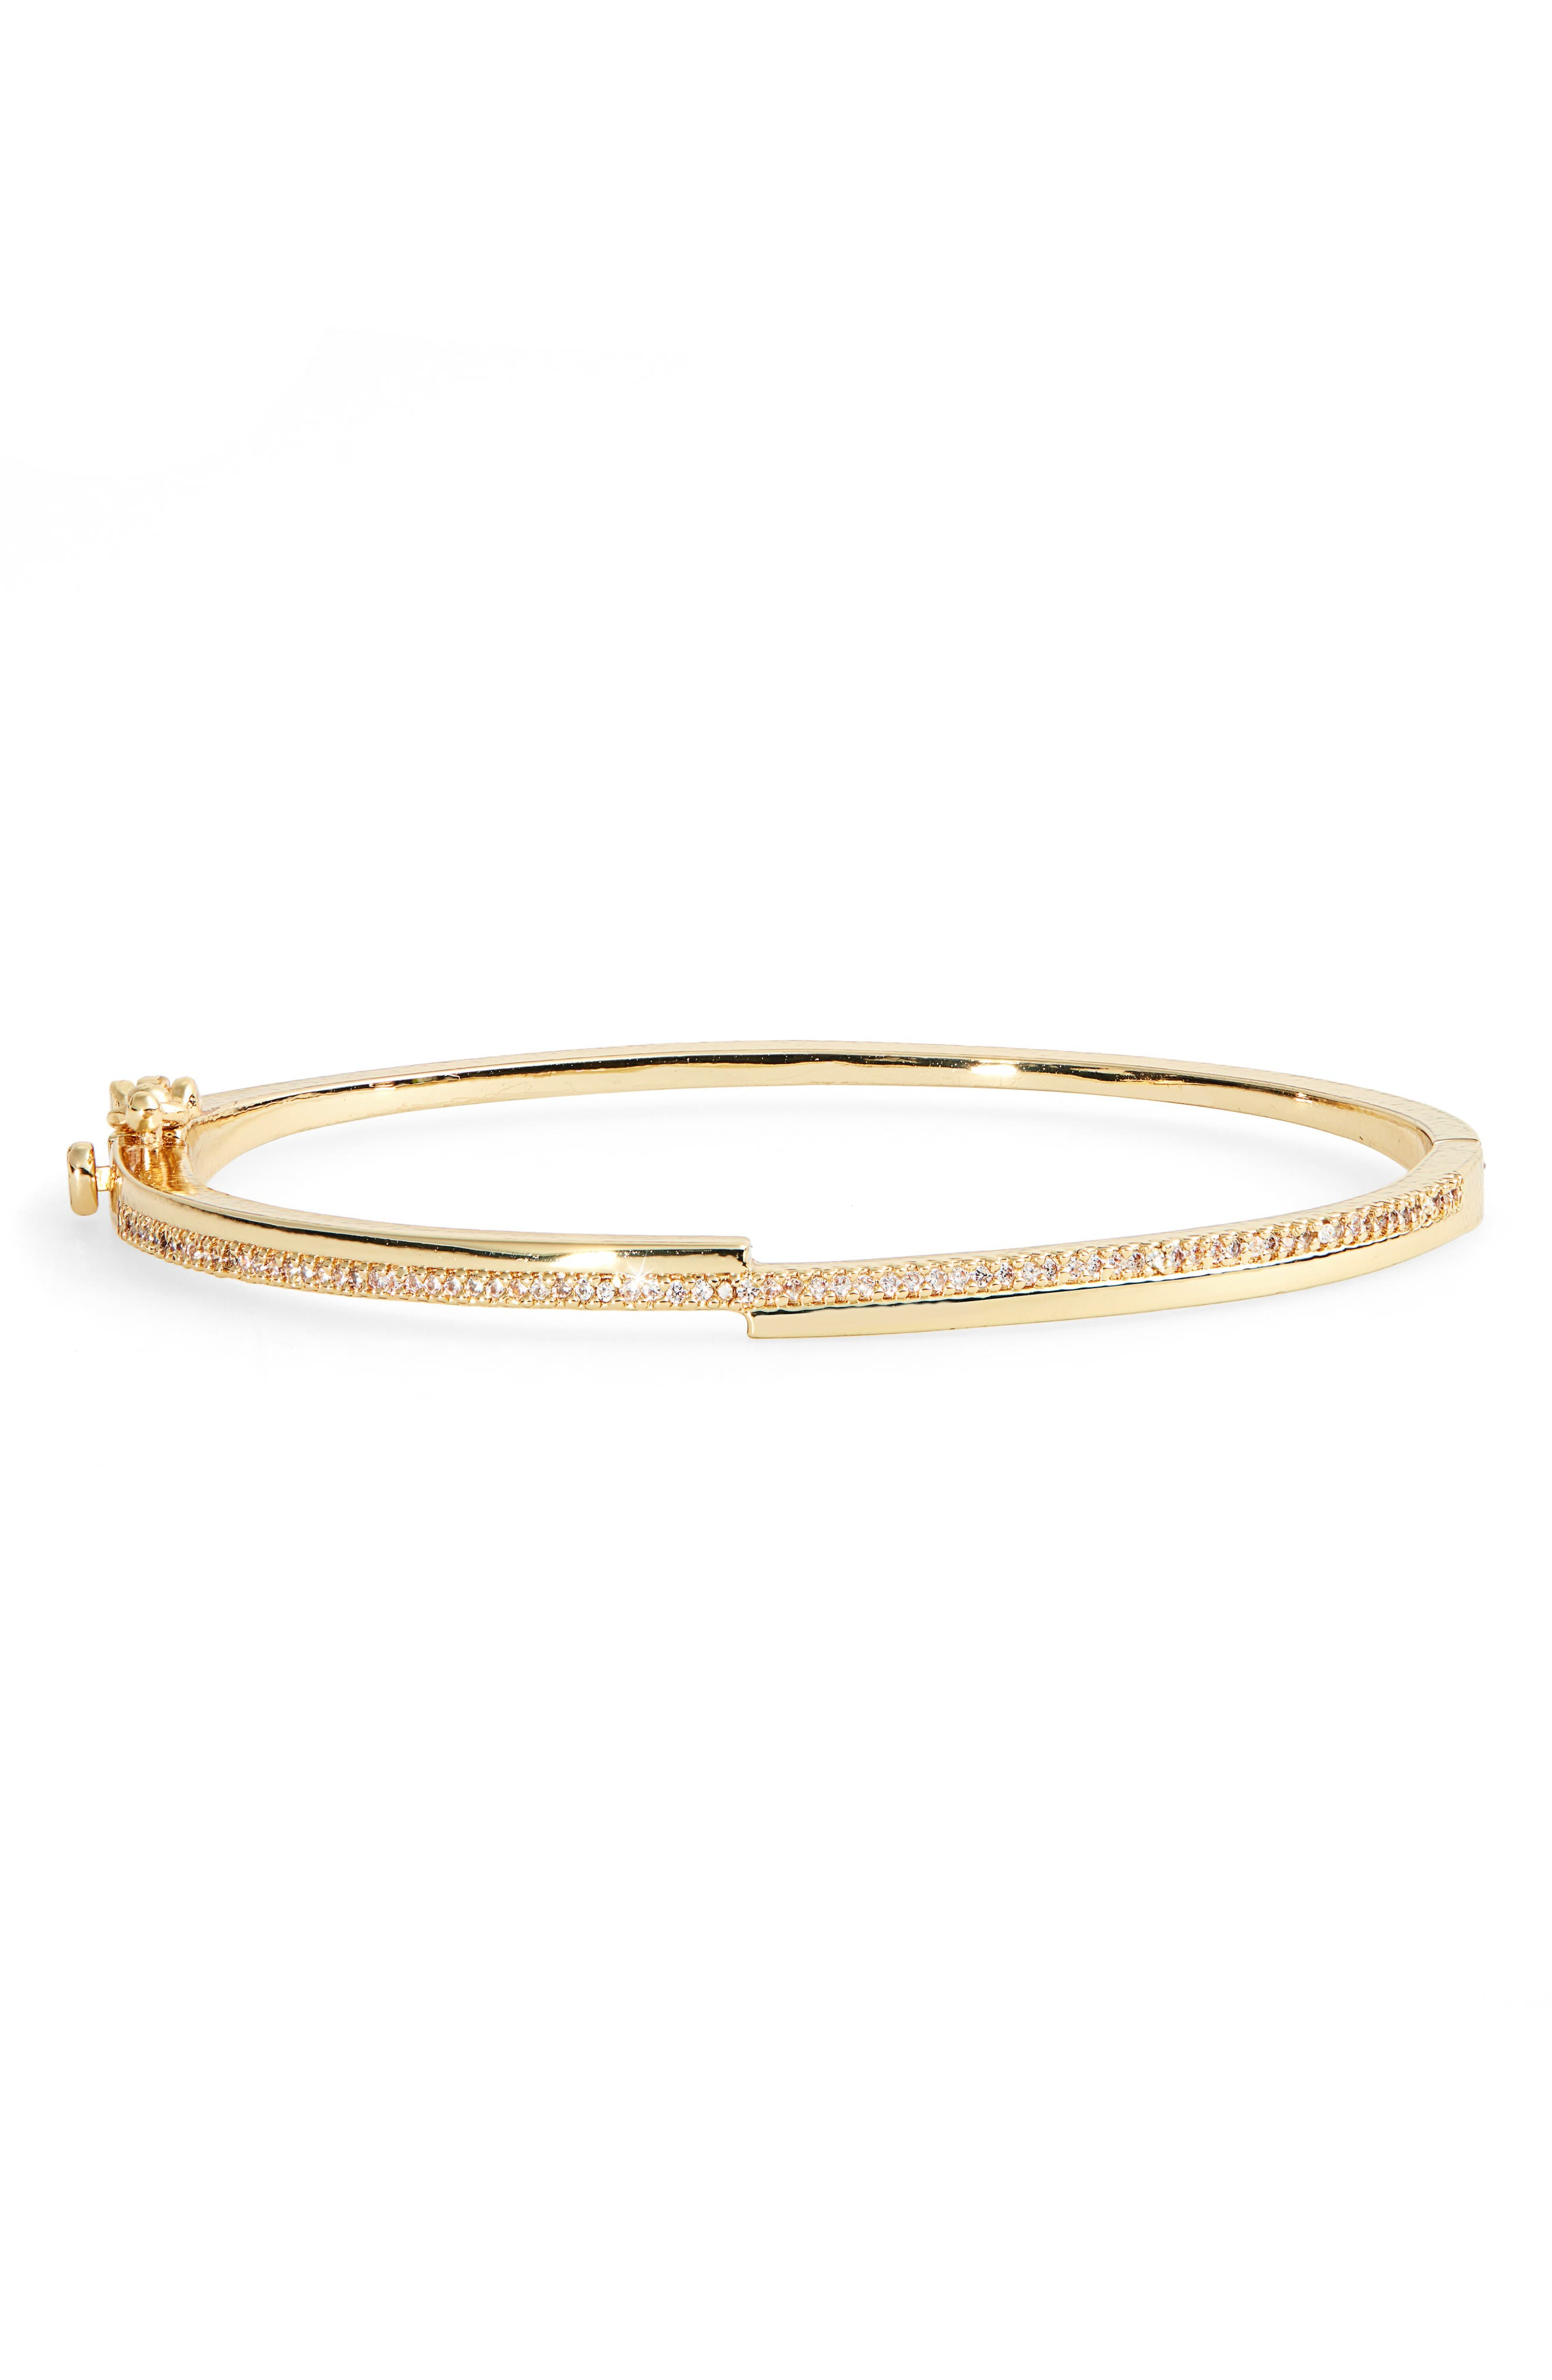 Pave cubic zirconia bring elegant sparkle to a slender bangle. Style Name: Nordstrom Split Pave Bangle. Style Number: 6016817. Available in stores.